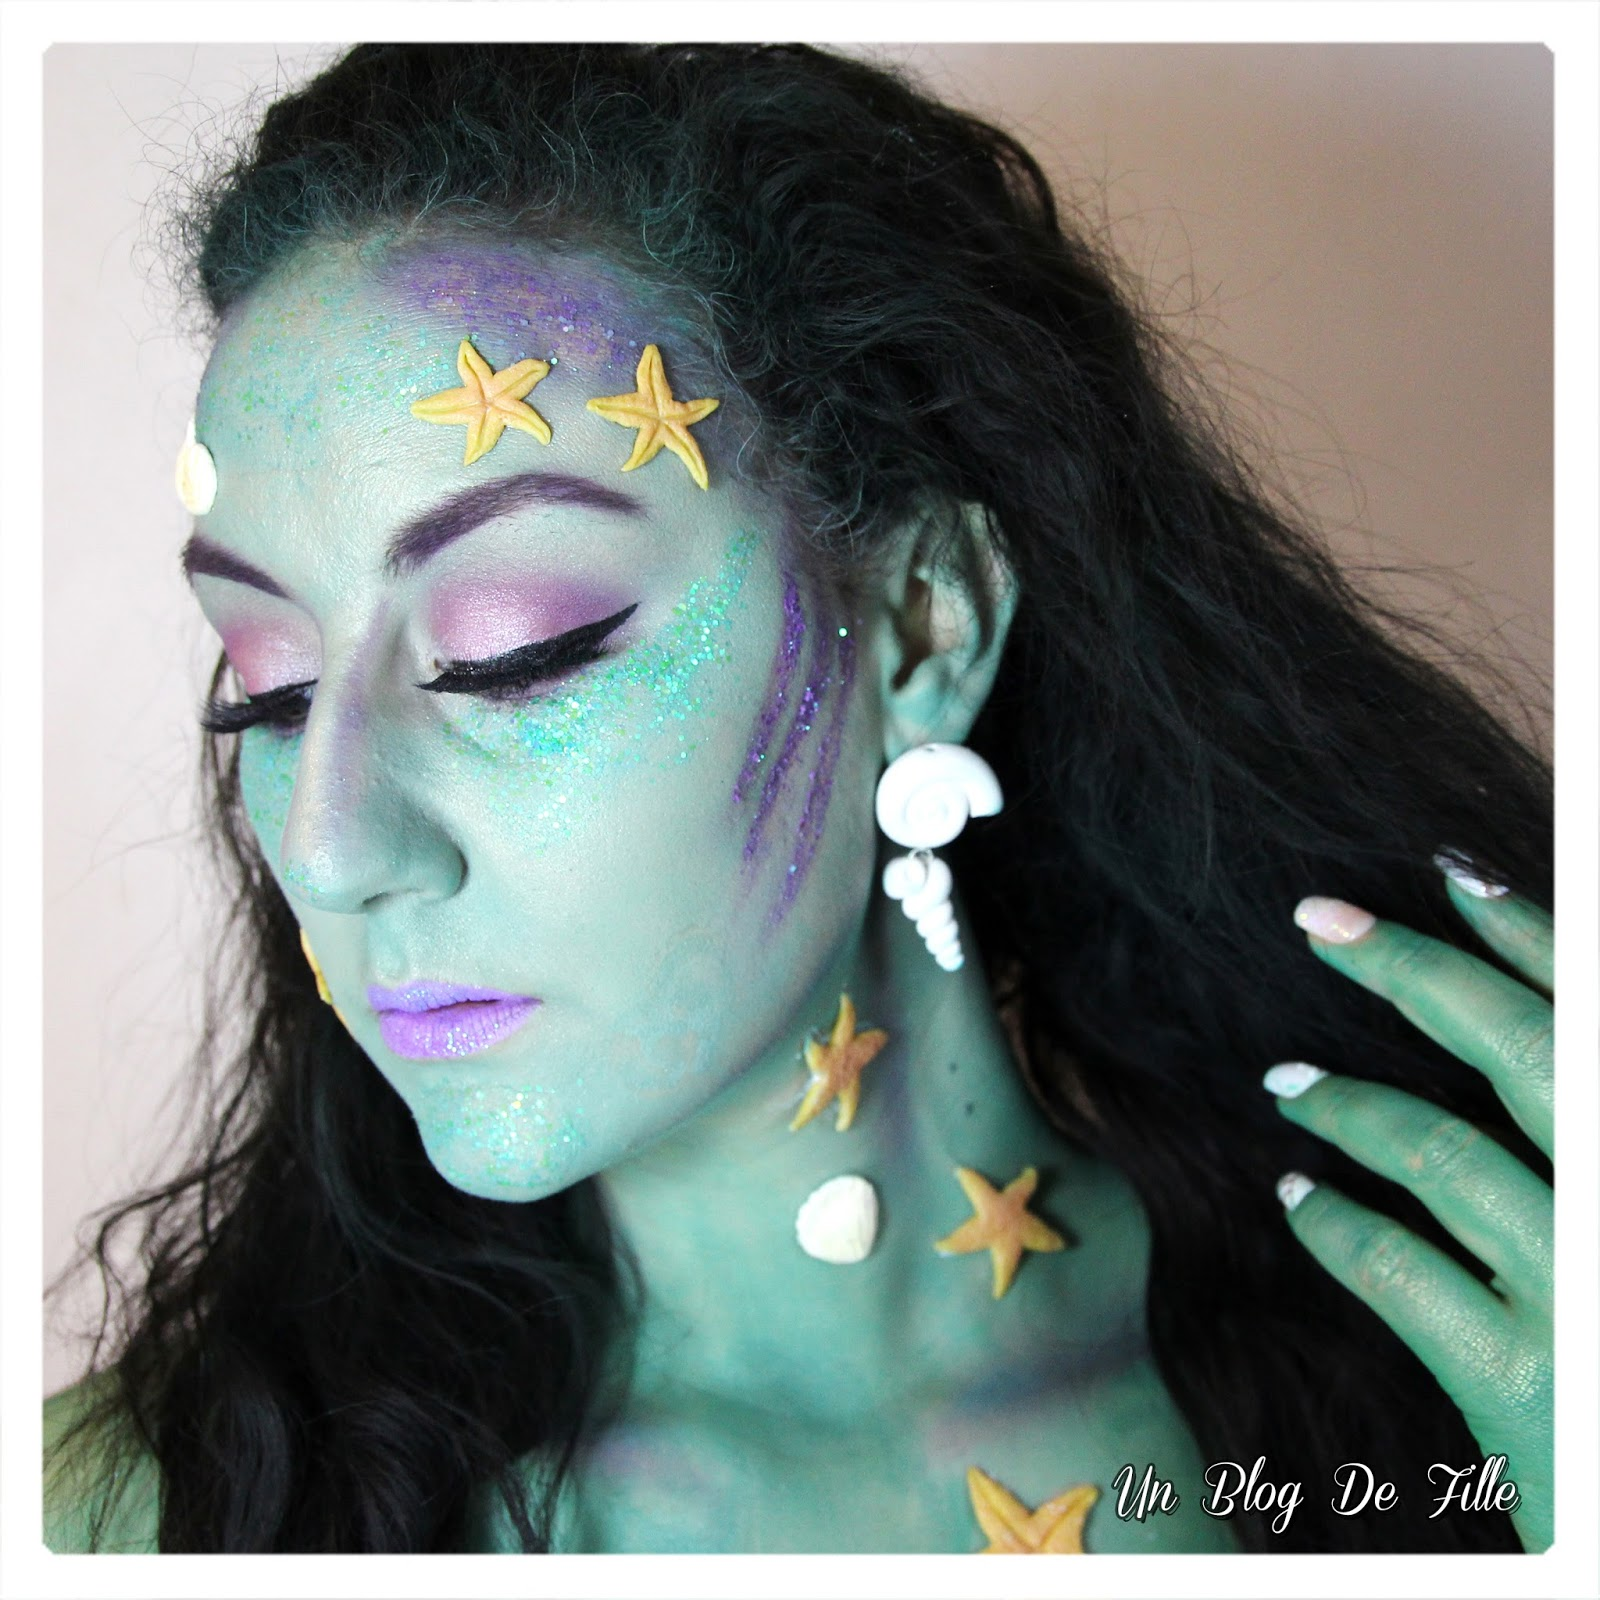 https://unblogdefille.blogspot.fr/2018/03/maquillage-artistique-sirene-mermaid.html